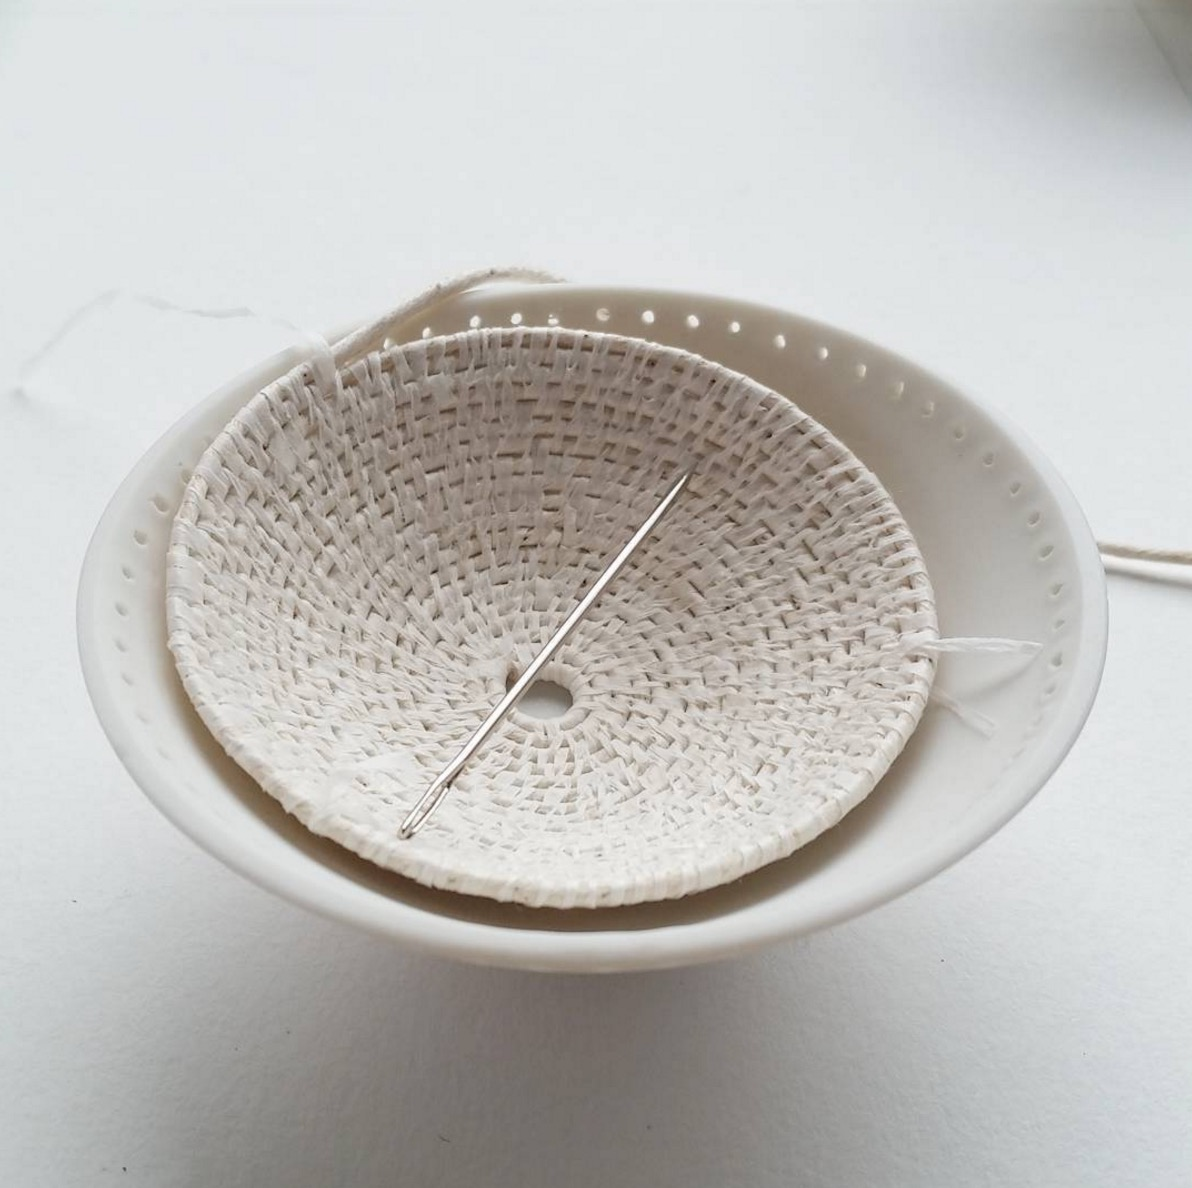 Weaving and Ceramics - Philippa Taylor